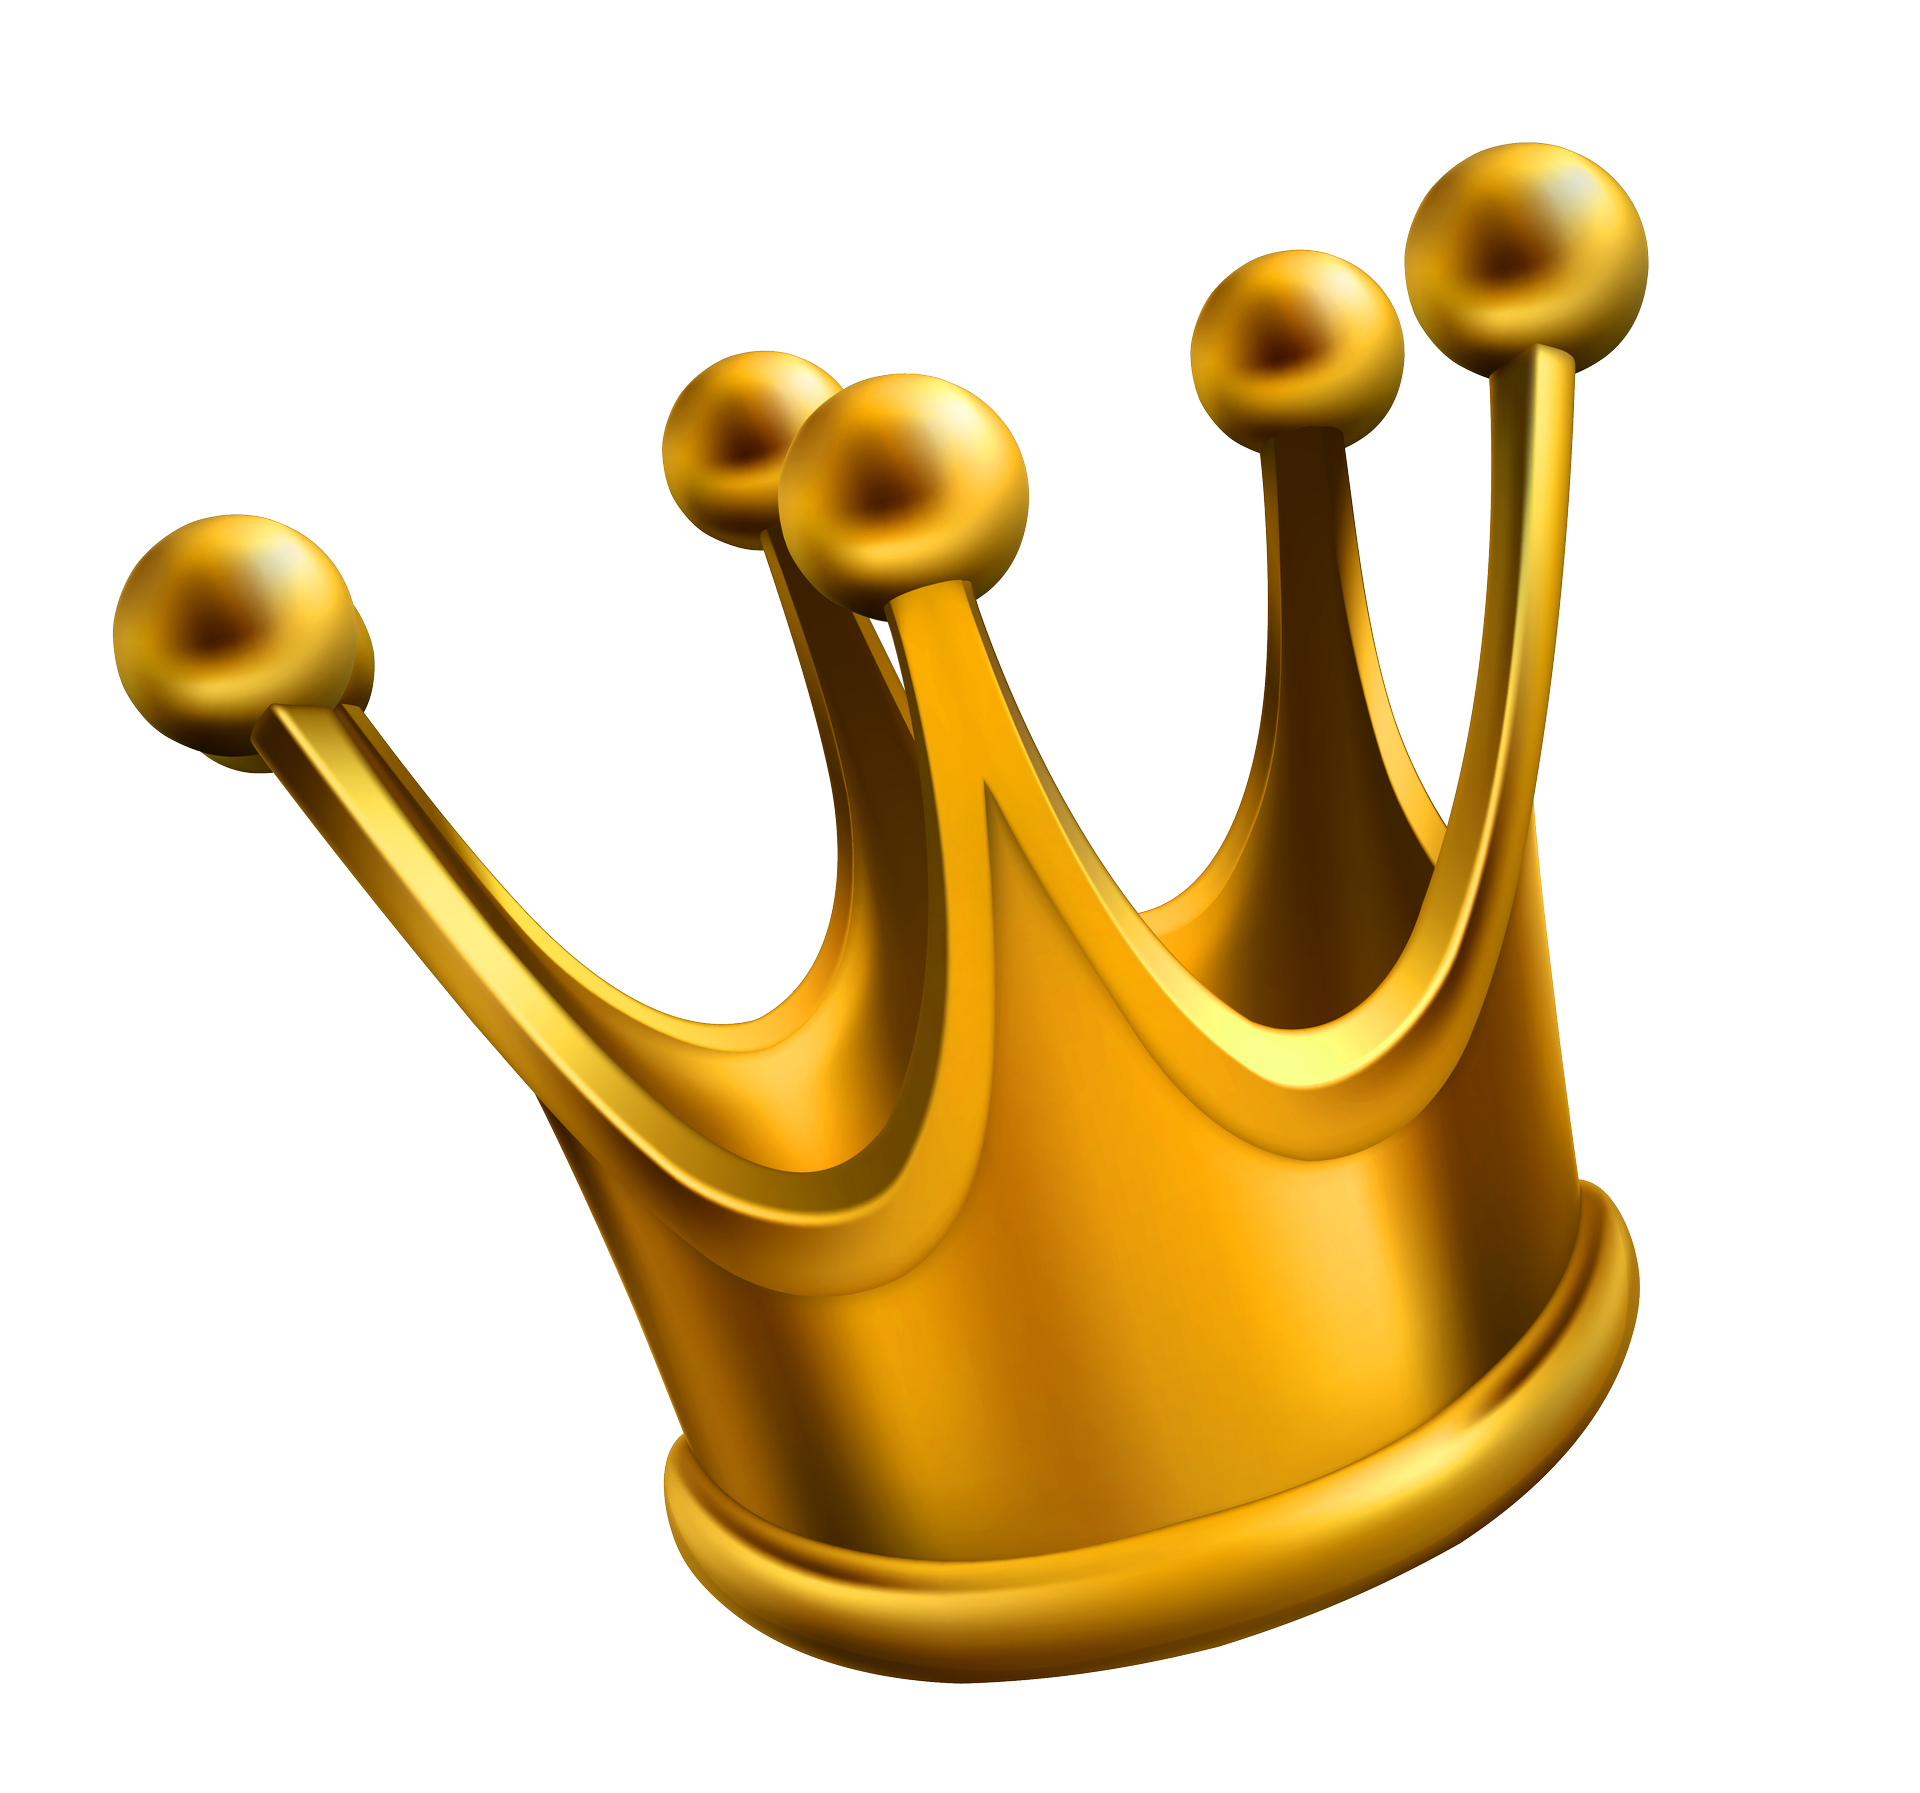 Crown clipart gold free stock Crown Clipart at GetDrawings.com | Free for personal use Crown ... free stock